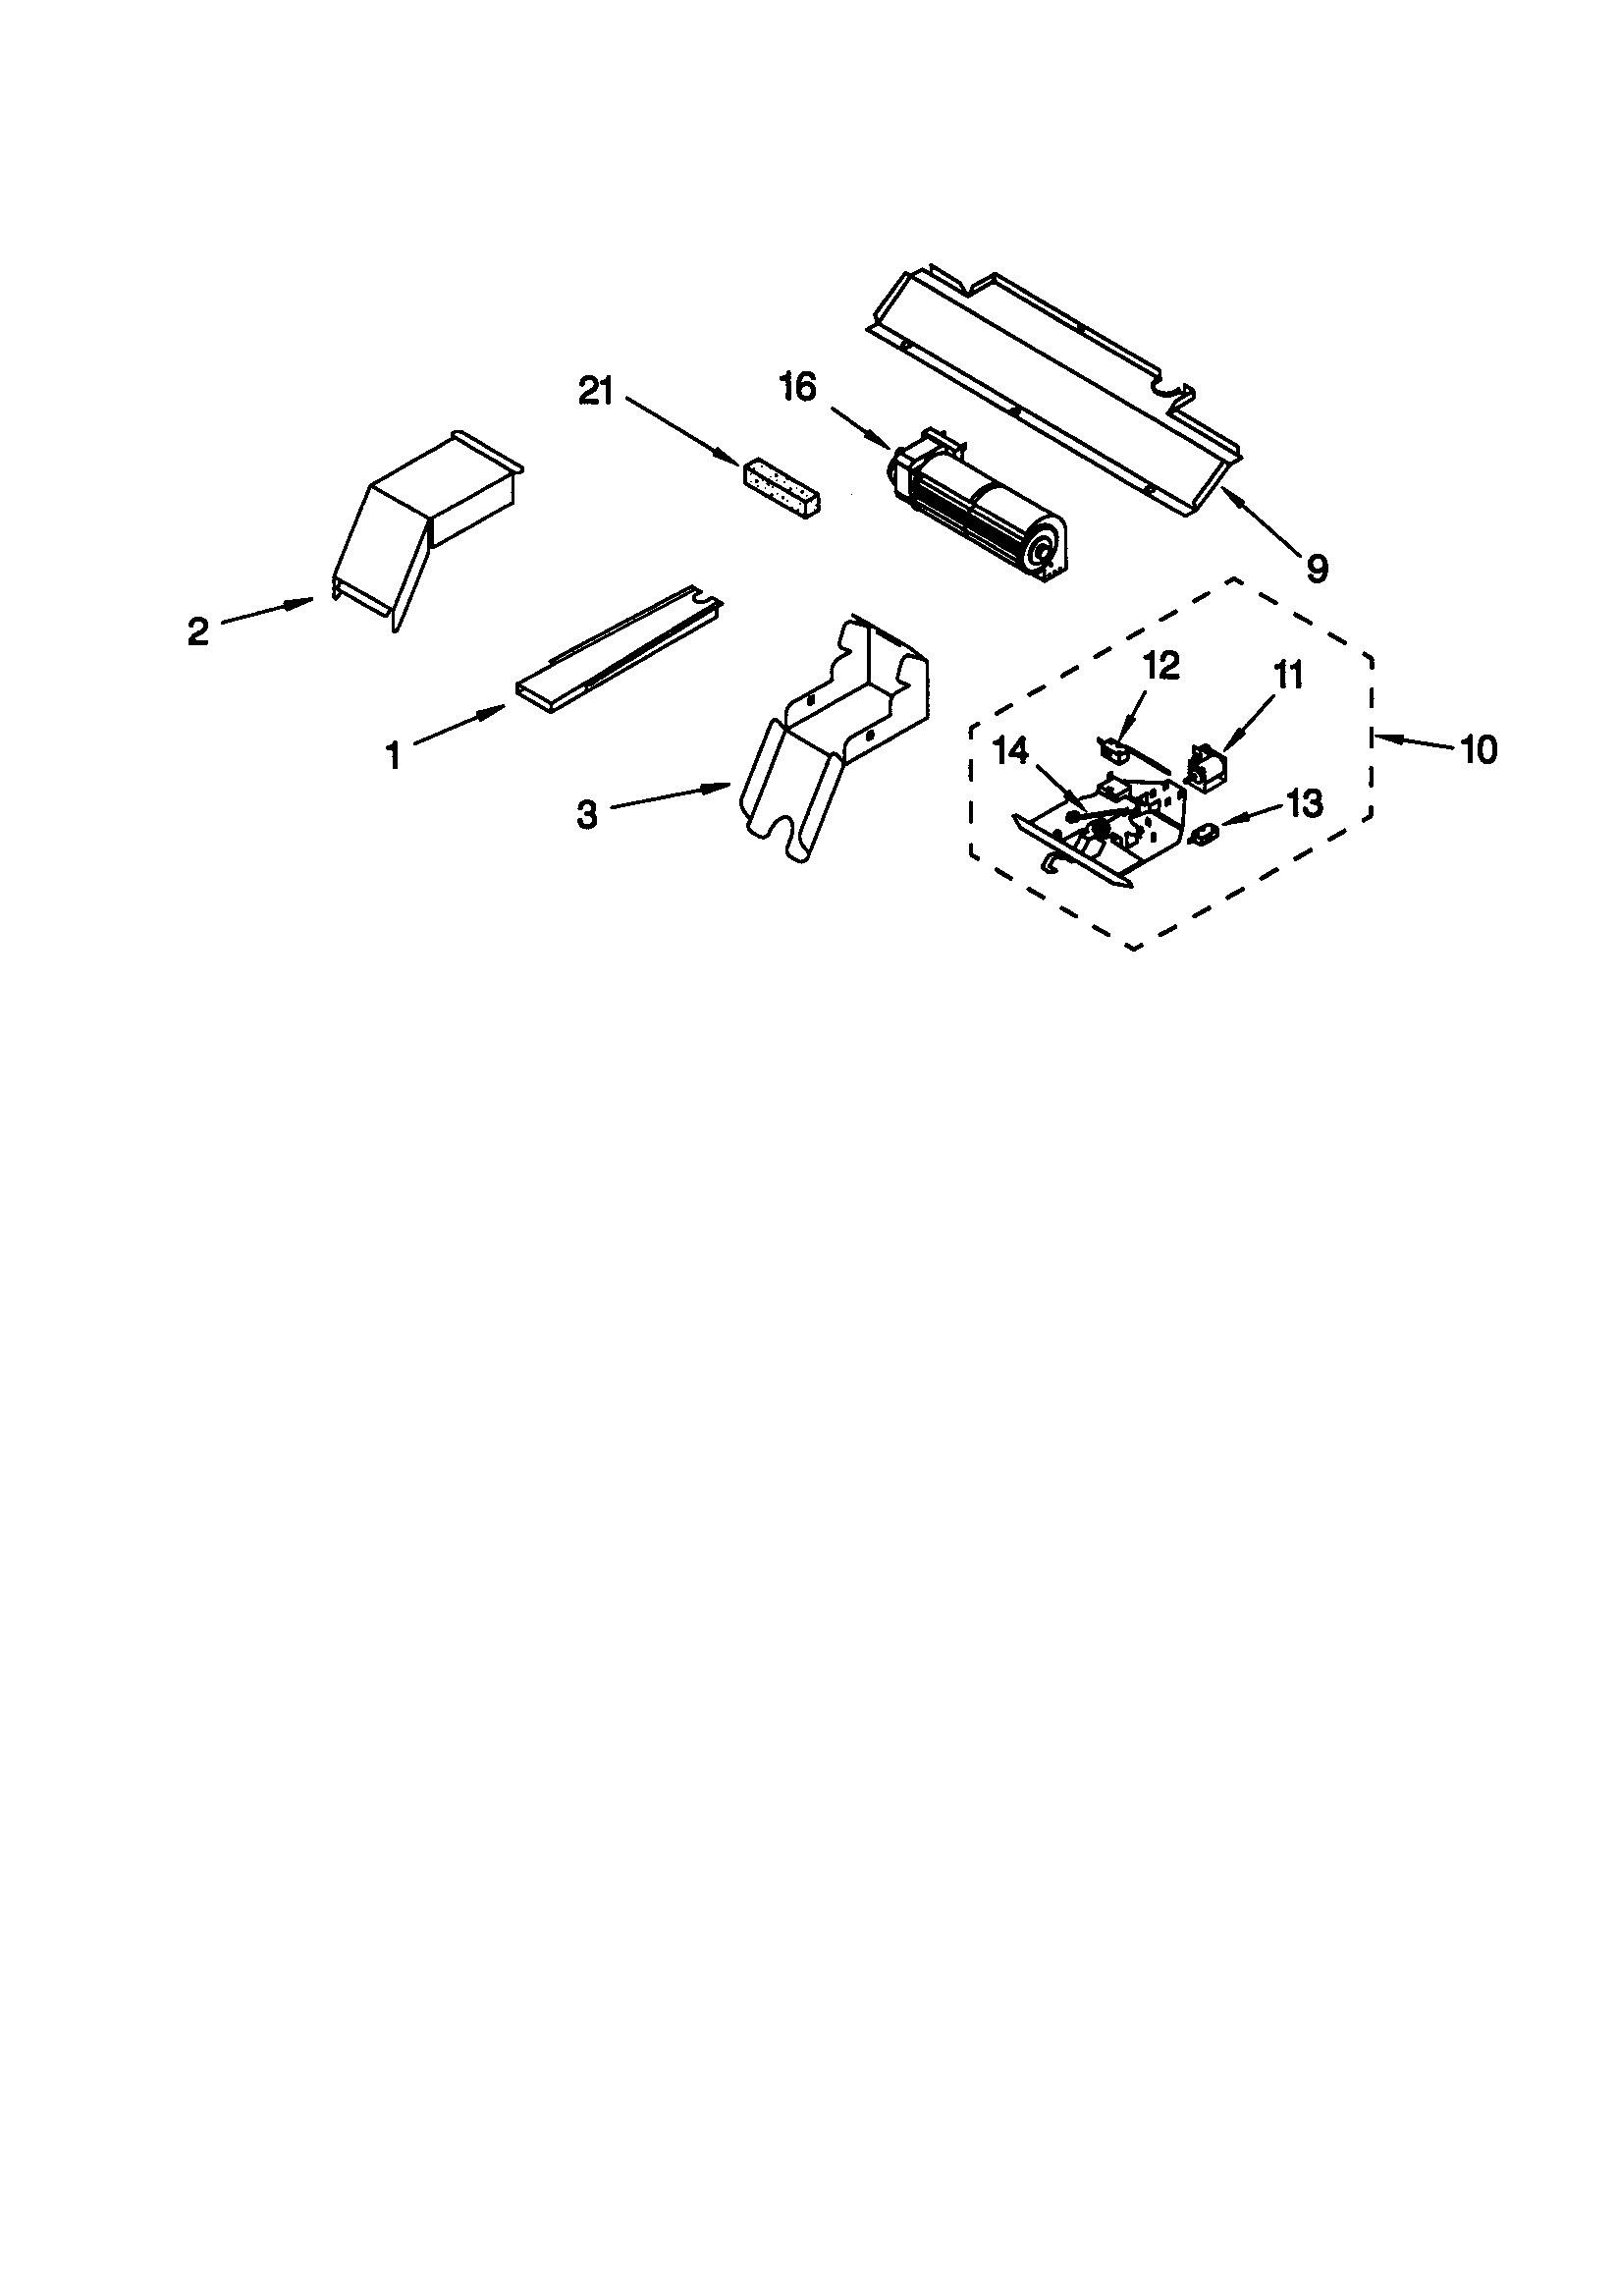 Gmc275pdb1 electric oven microwave bo latch parts diagram